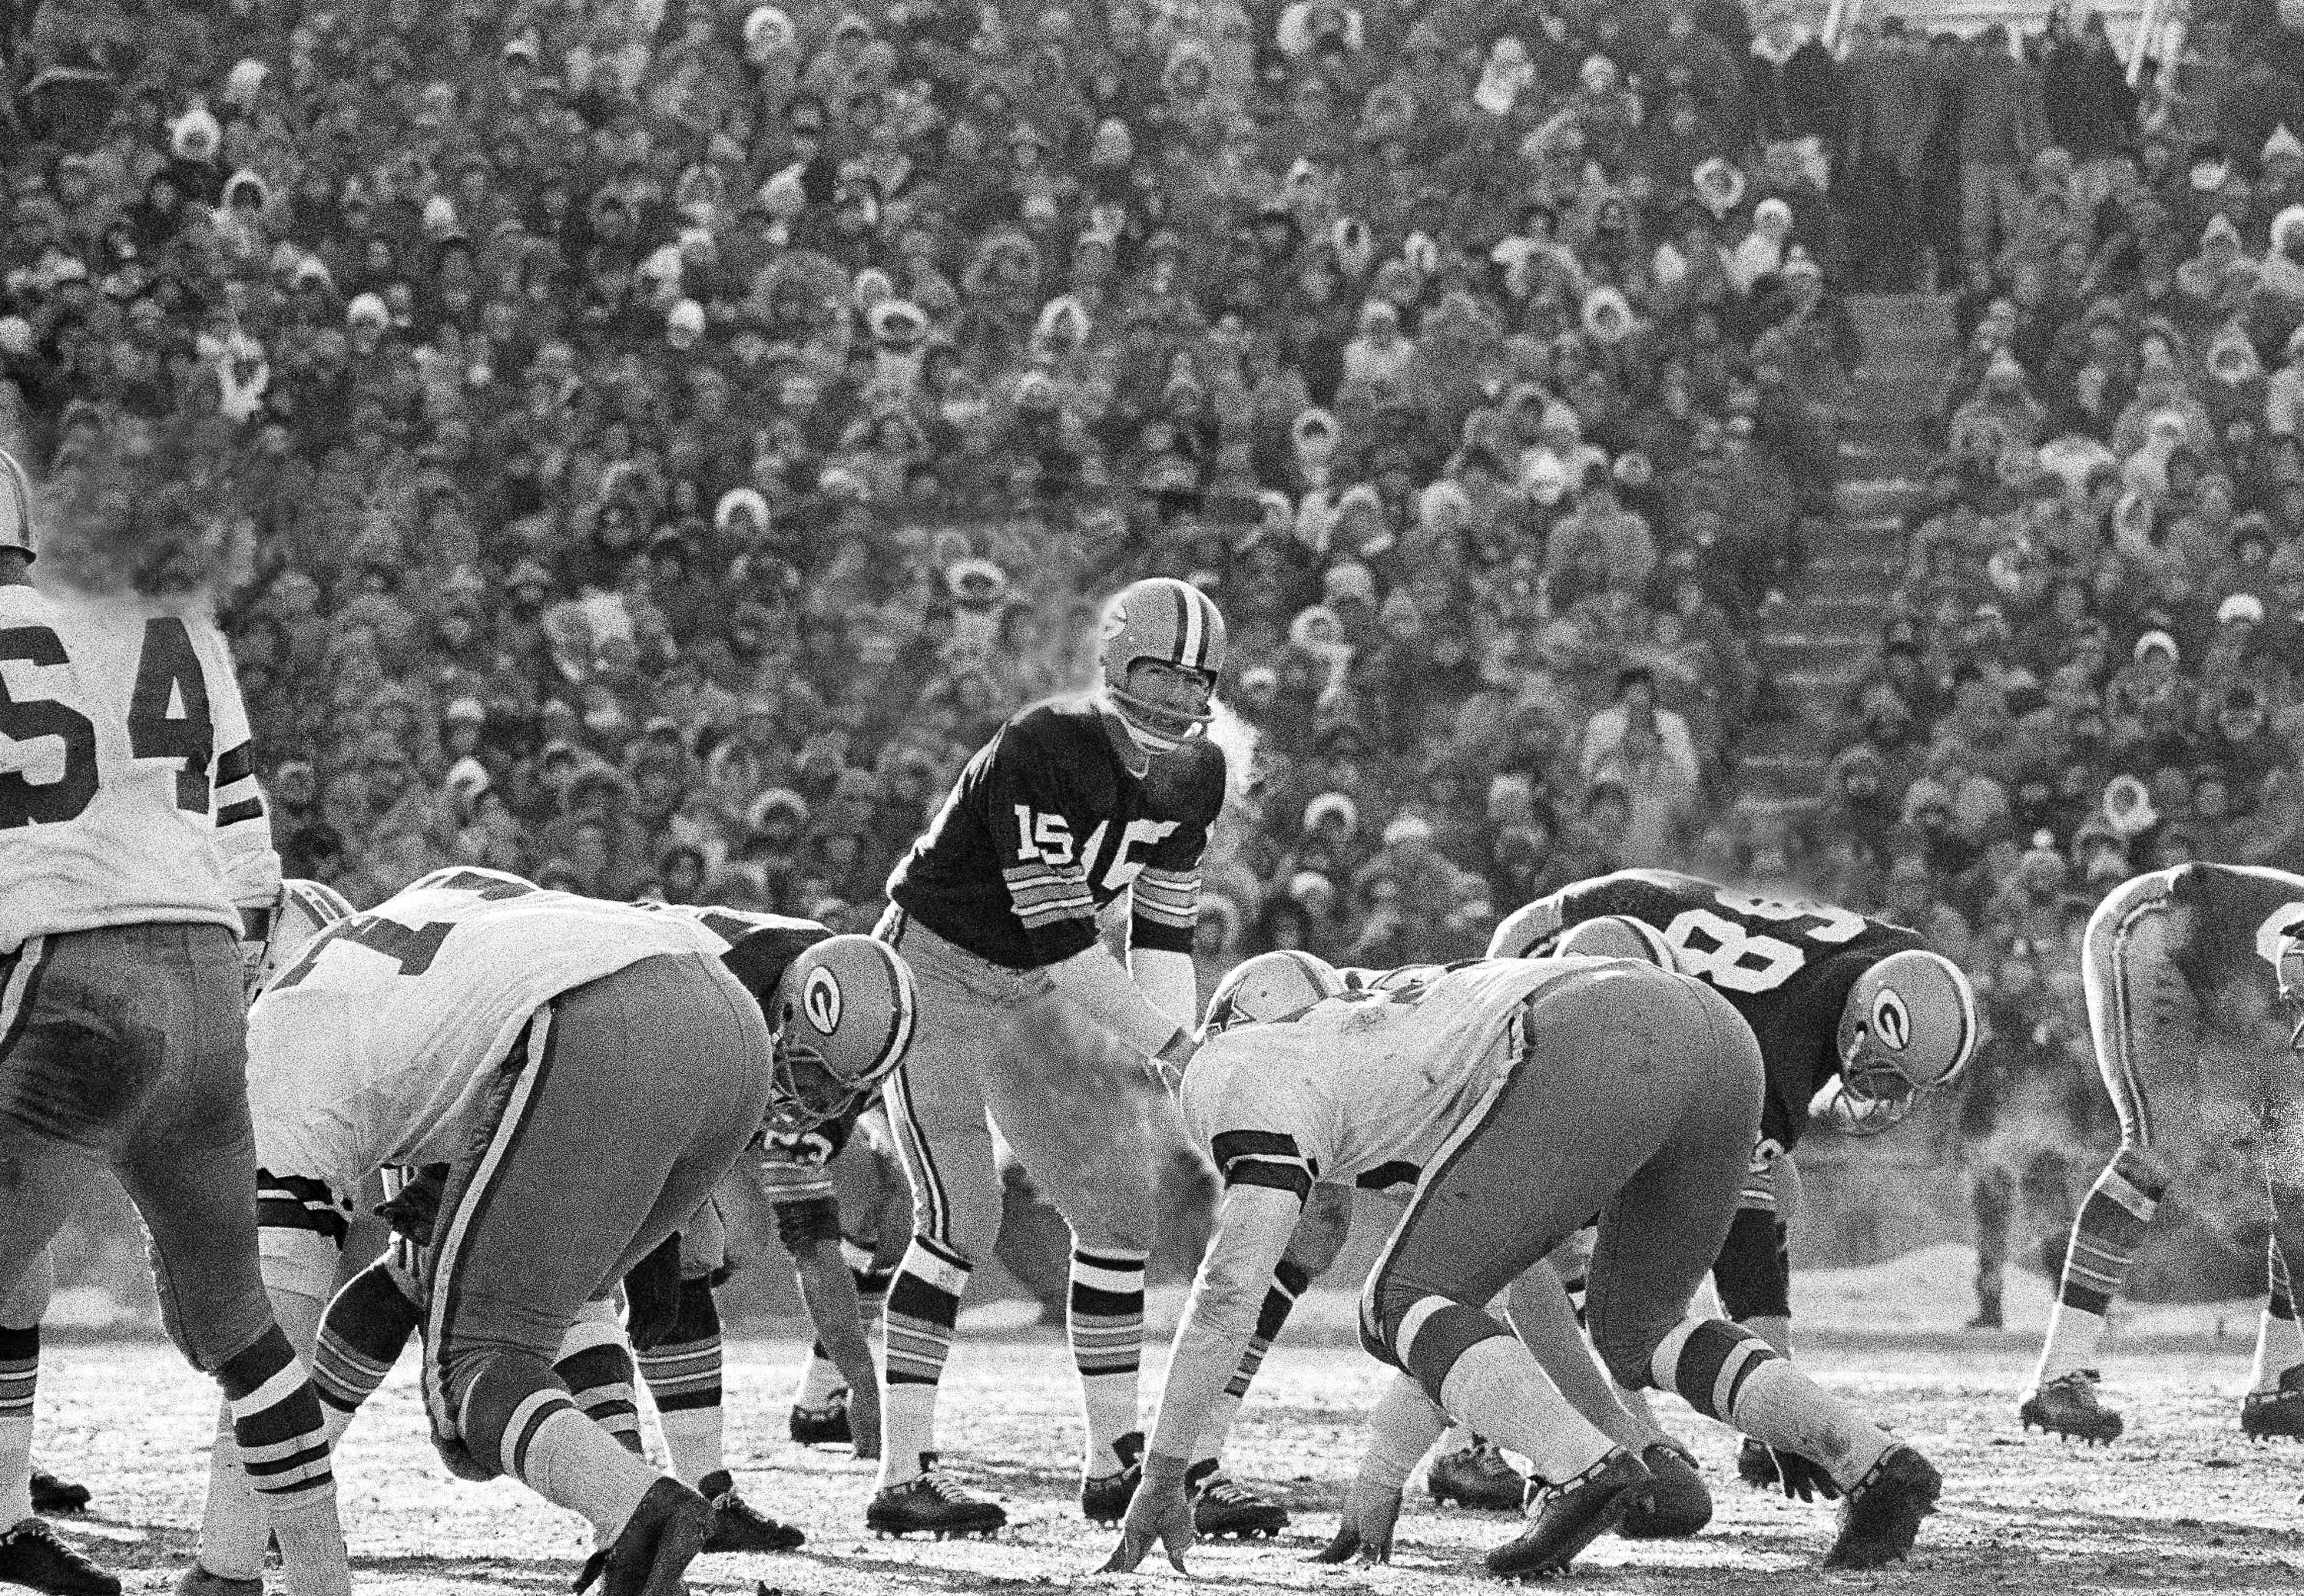 Packers vs Cowboys 1967